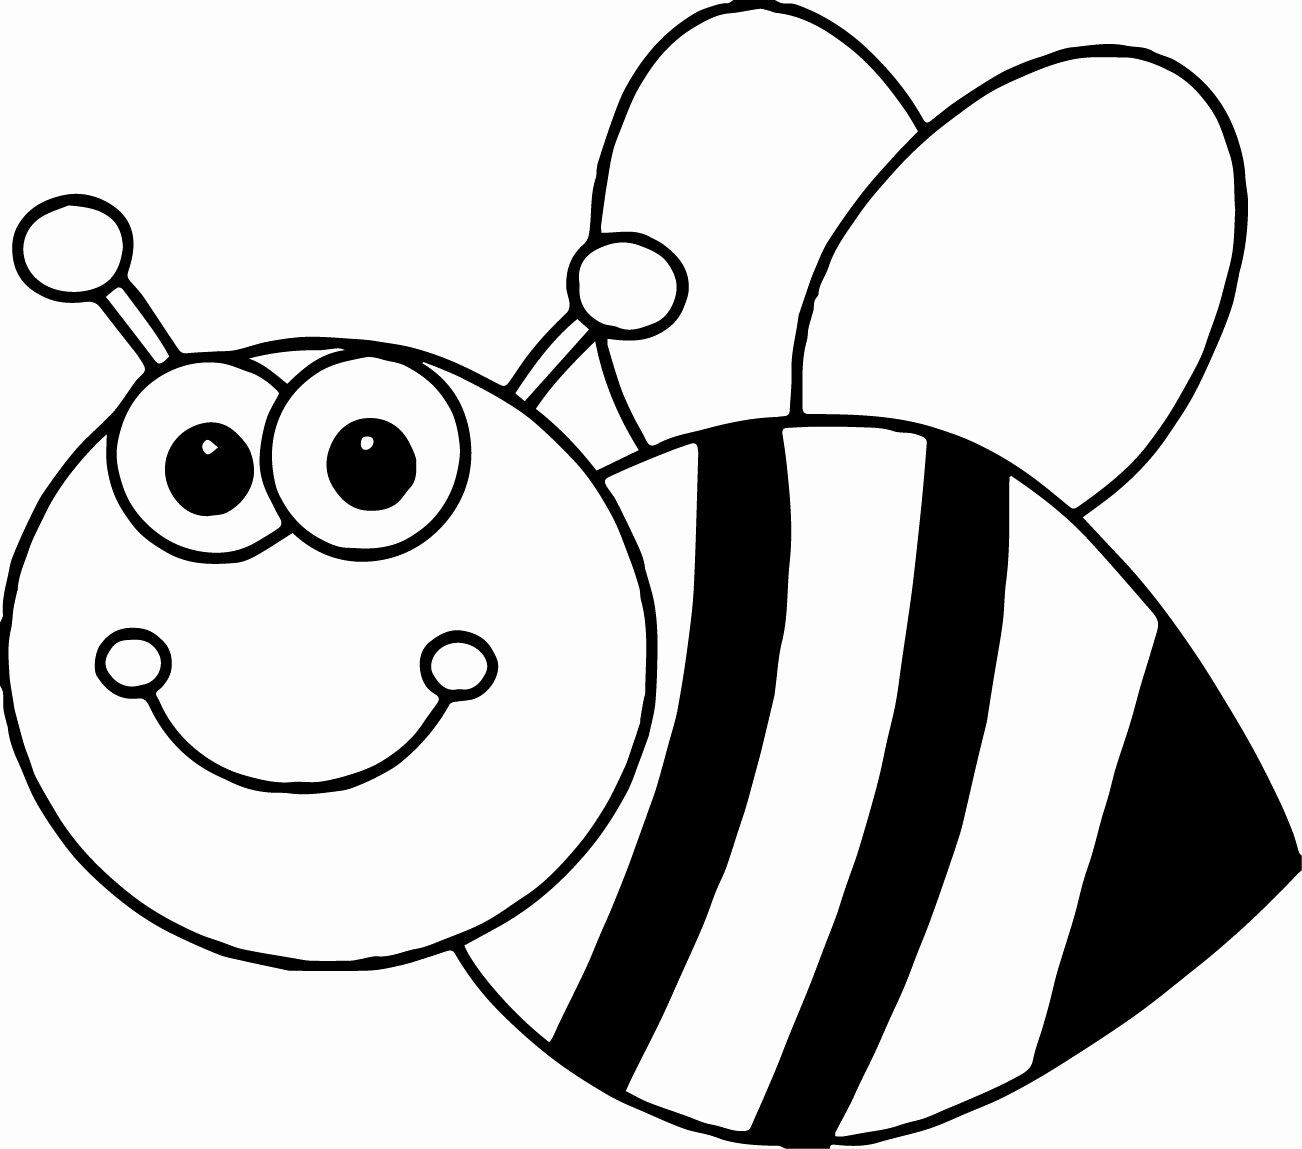 Bumble Bee Coloring Page Luxury Free Printable Bumble Bee Coloring Pages For Kids Wickedbabesblog Com Bee Coloring Pages Bee Printables Bee Template